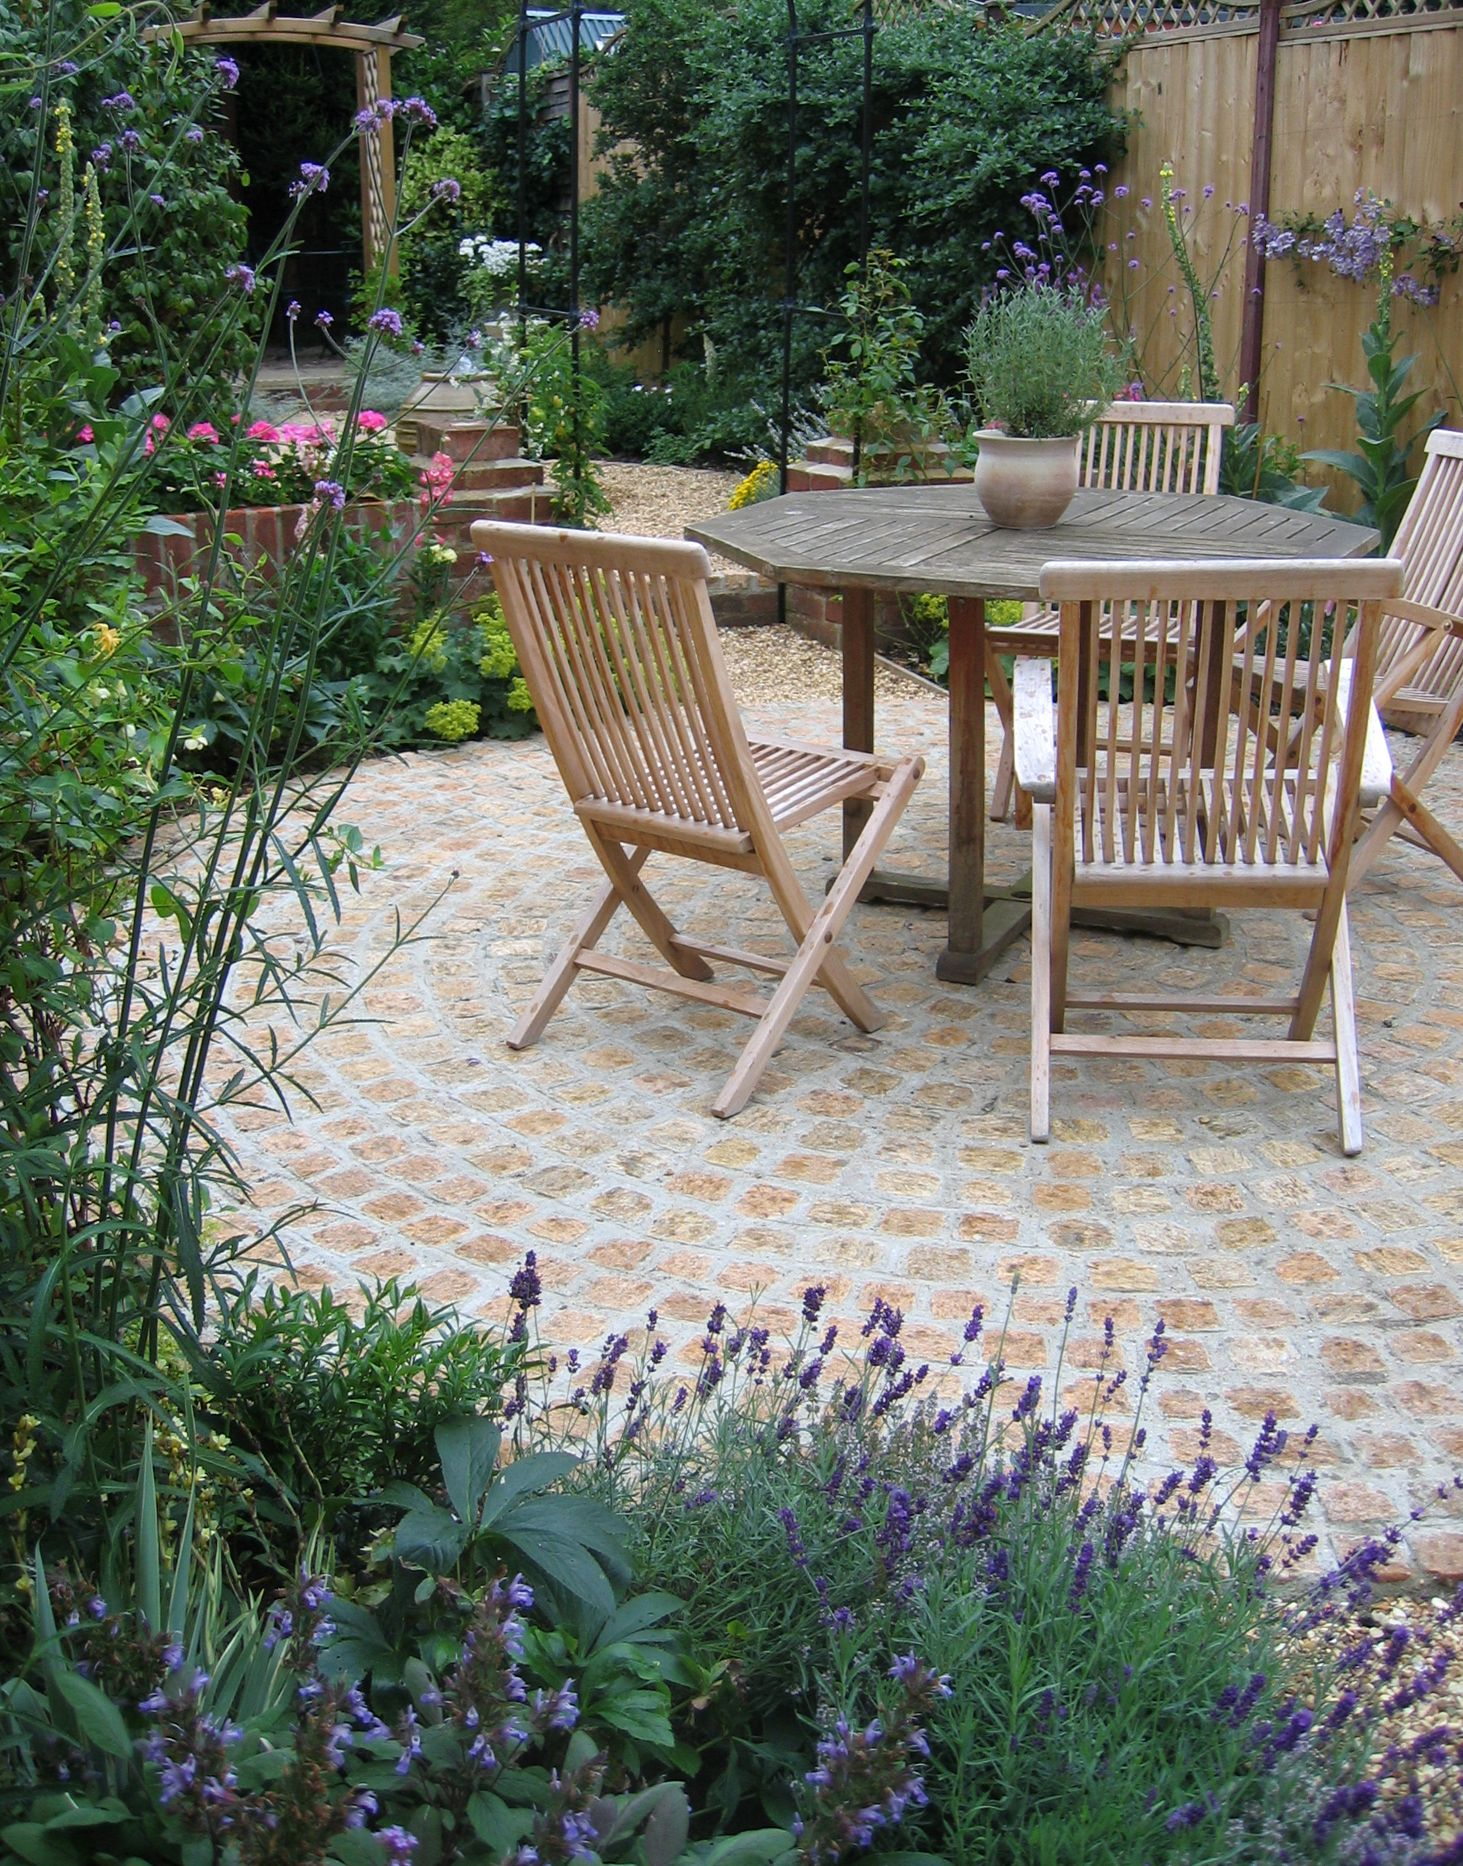 Traditional courtyard garden with cobbles and lavender Kleine Tuin twerpen Kleine Tuin Patio Hofjestuin